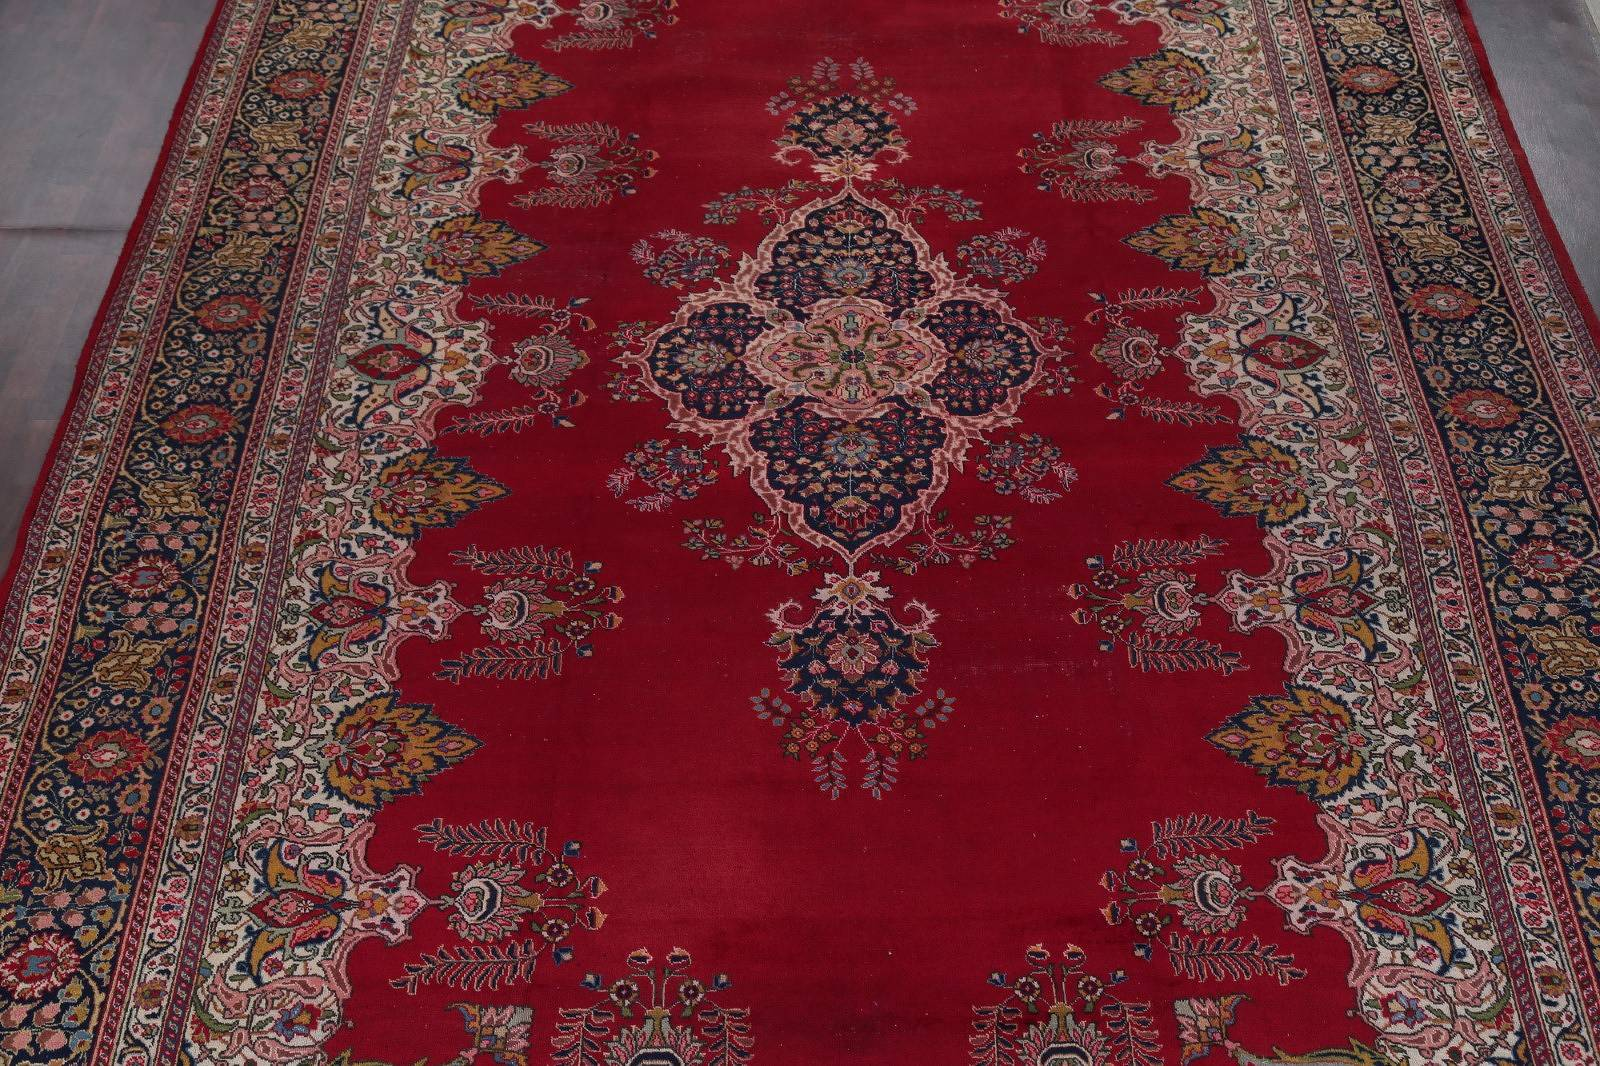 Floral Tabriz Persian Hand-Knotted 12x18 Red Rug Wool